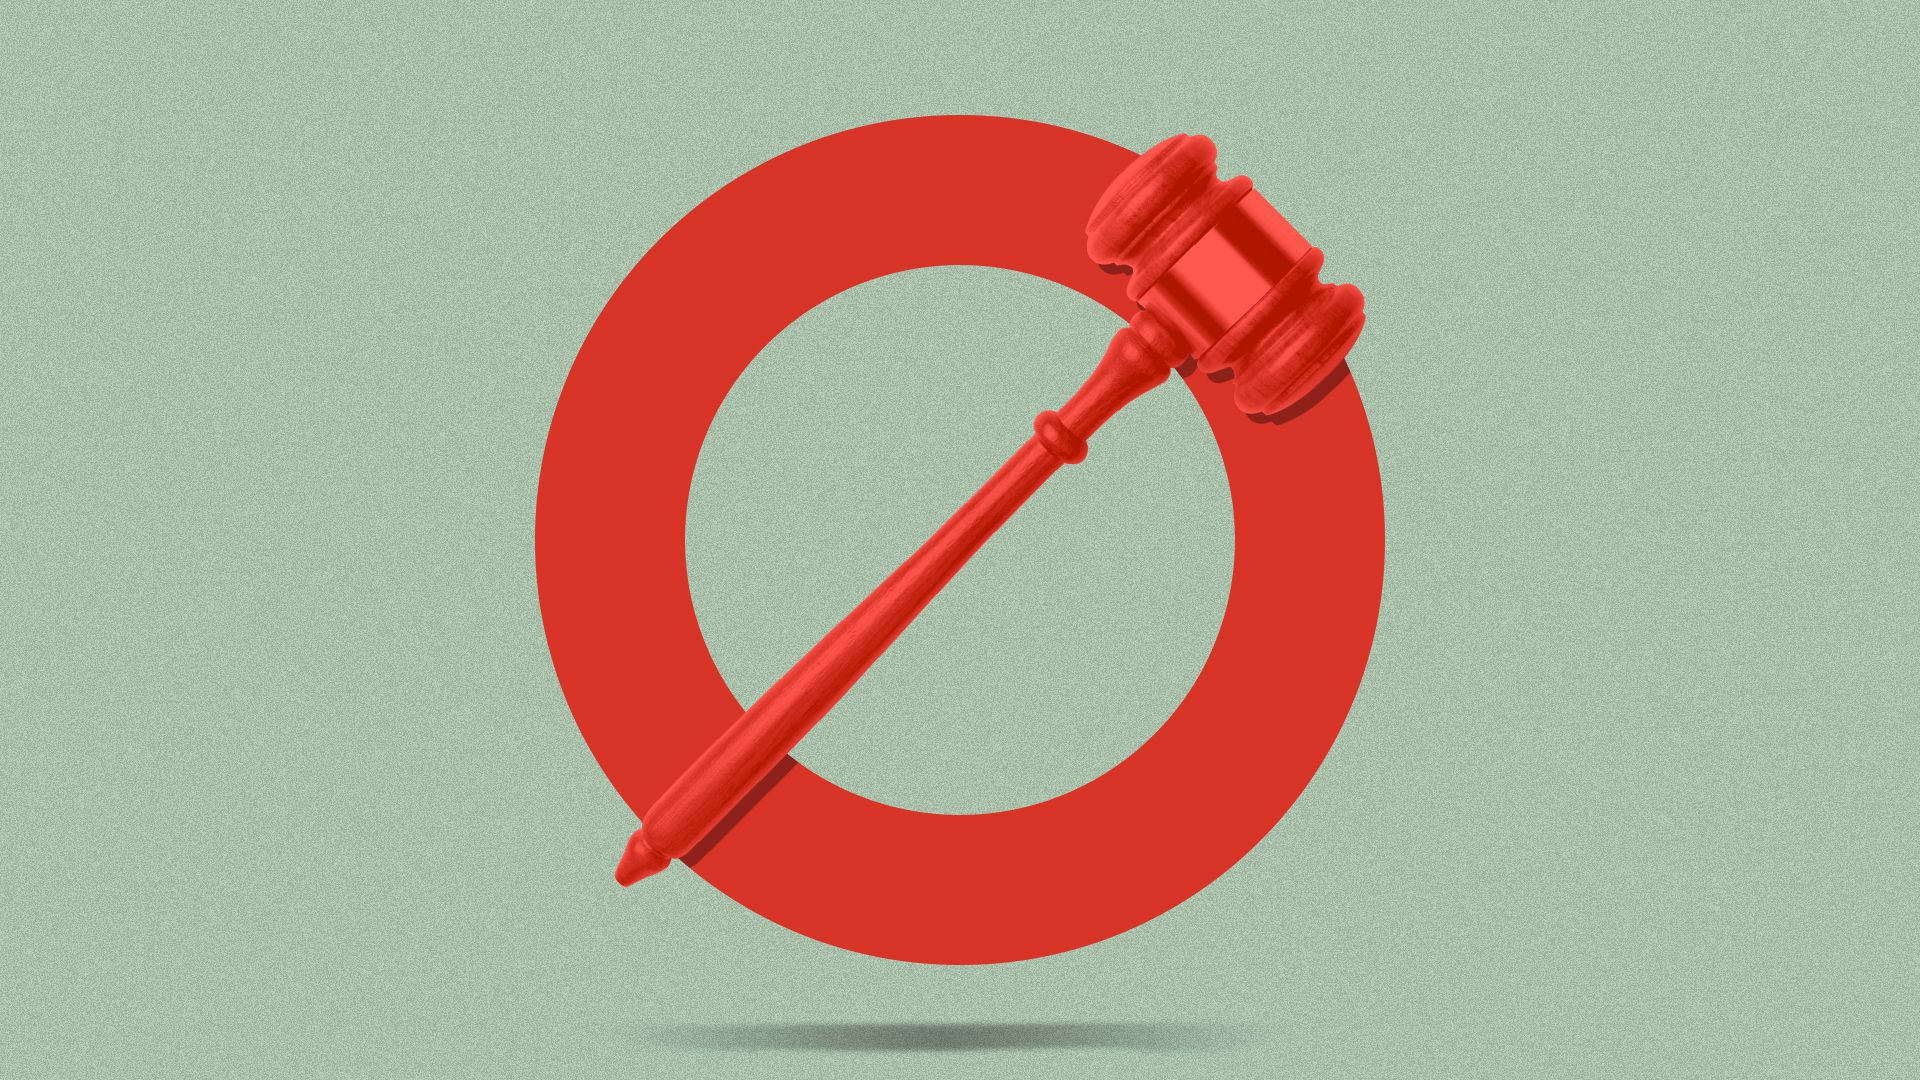 Illustration of a general prohibition symbol, with a gavel as a crossbar.